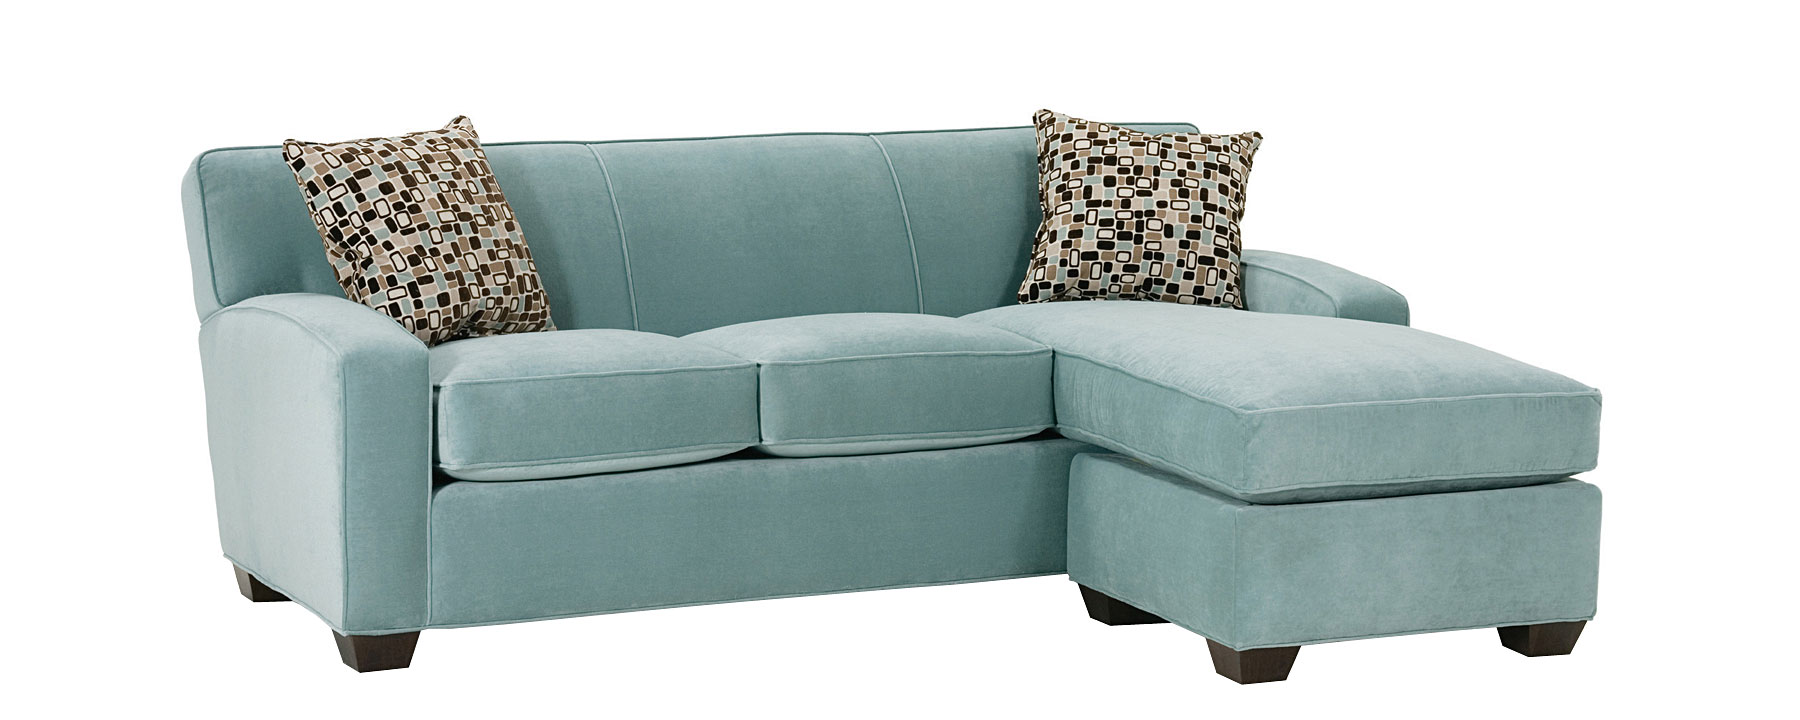 Small Contemporary Sectional Sofa Couch With Chaise Club